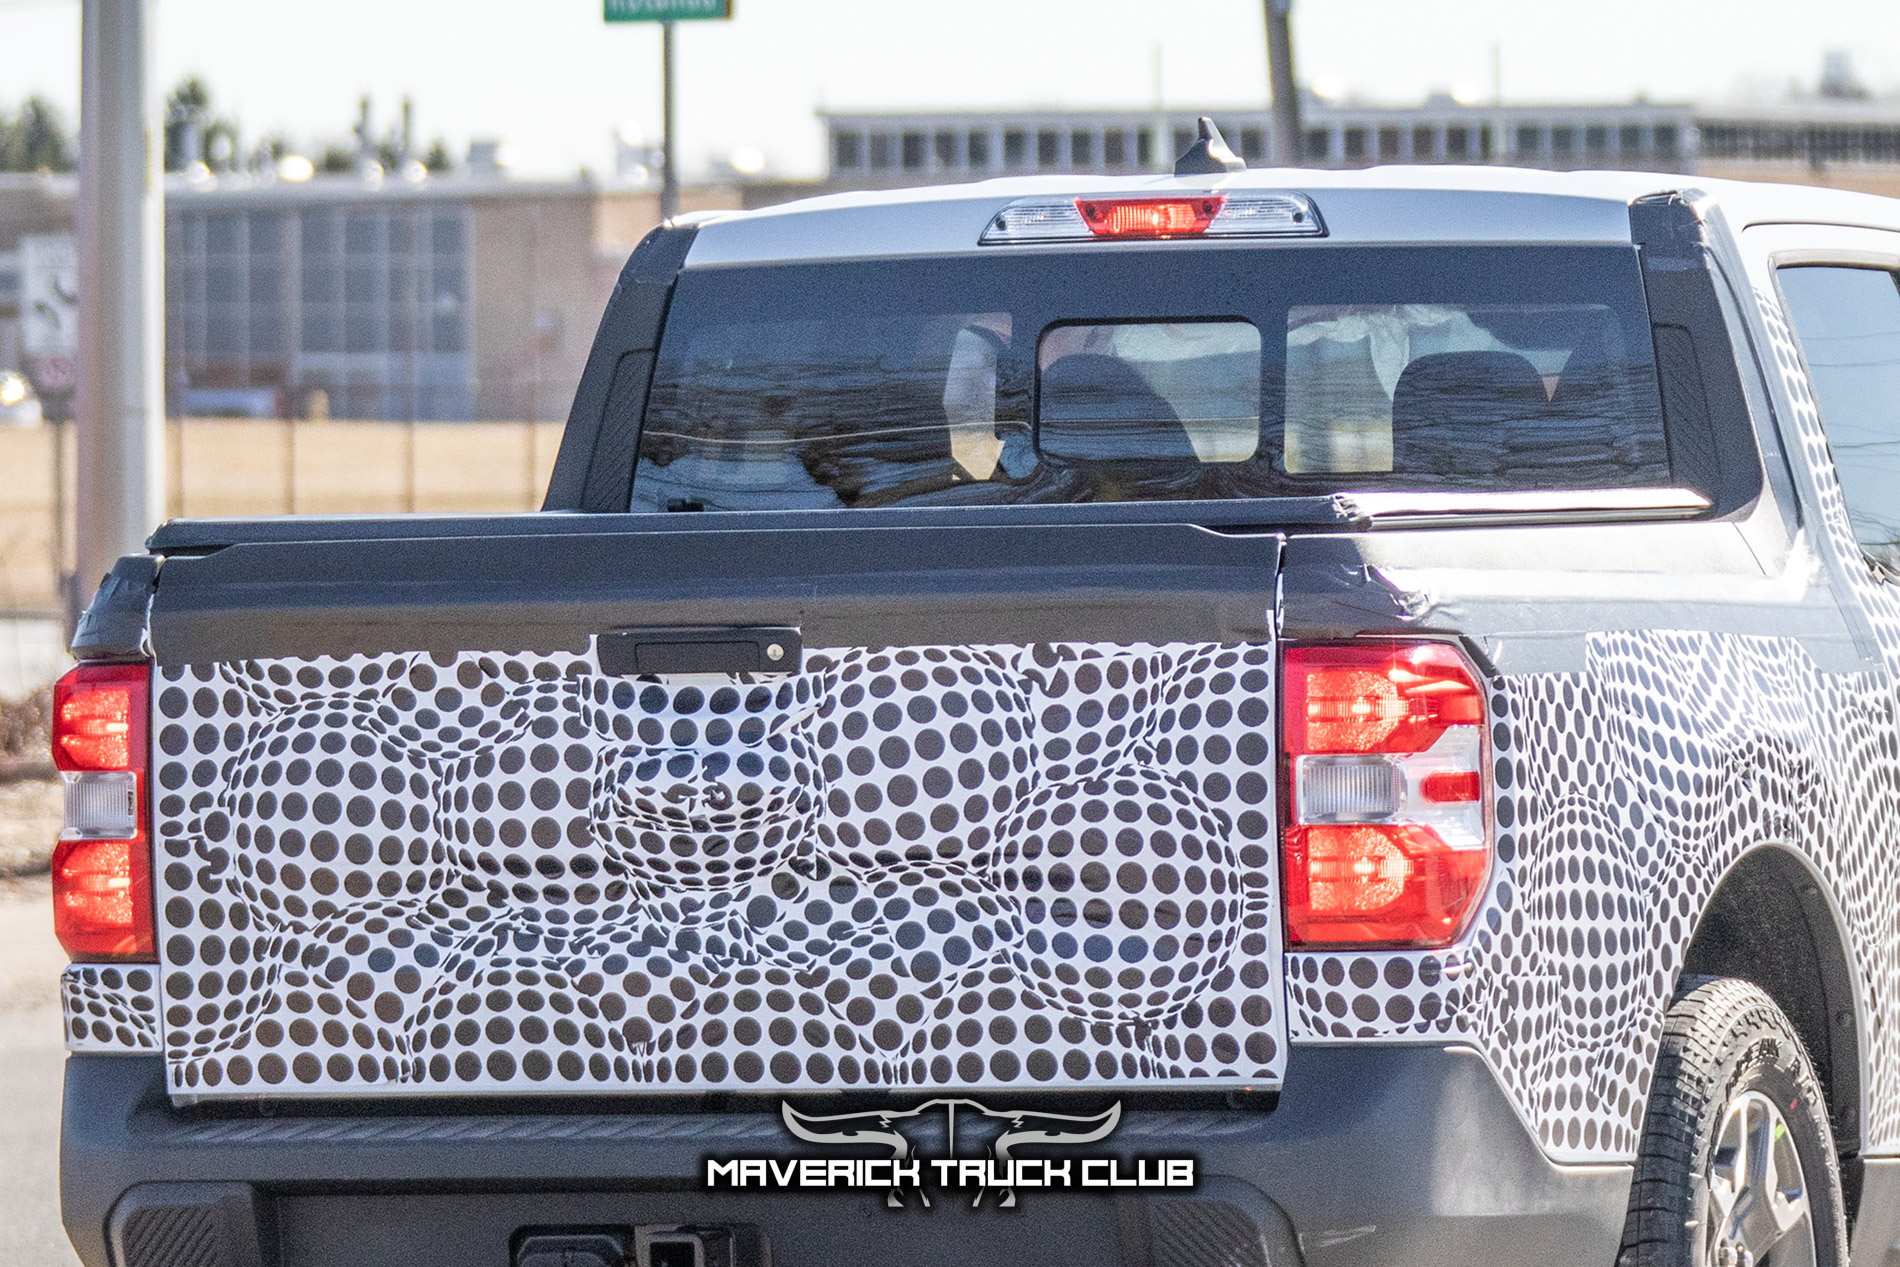 2022 Ford Maverick Pickup Spied 17.jpg